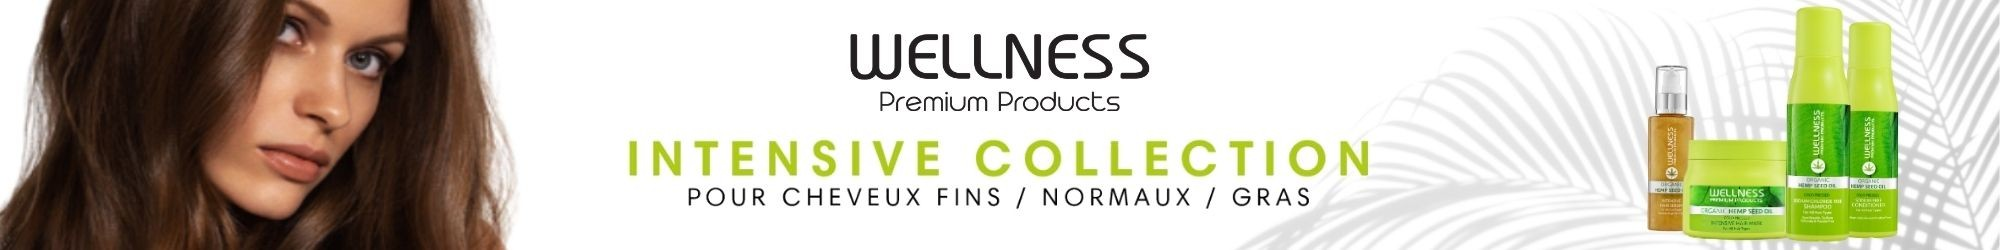 Intensive Collection - cheveux fins, normaux, gras